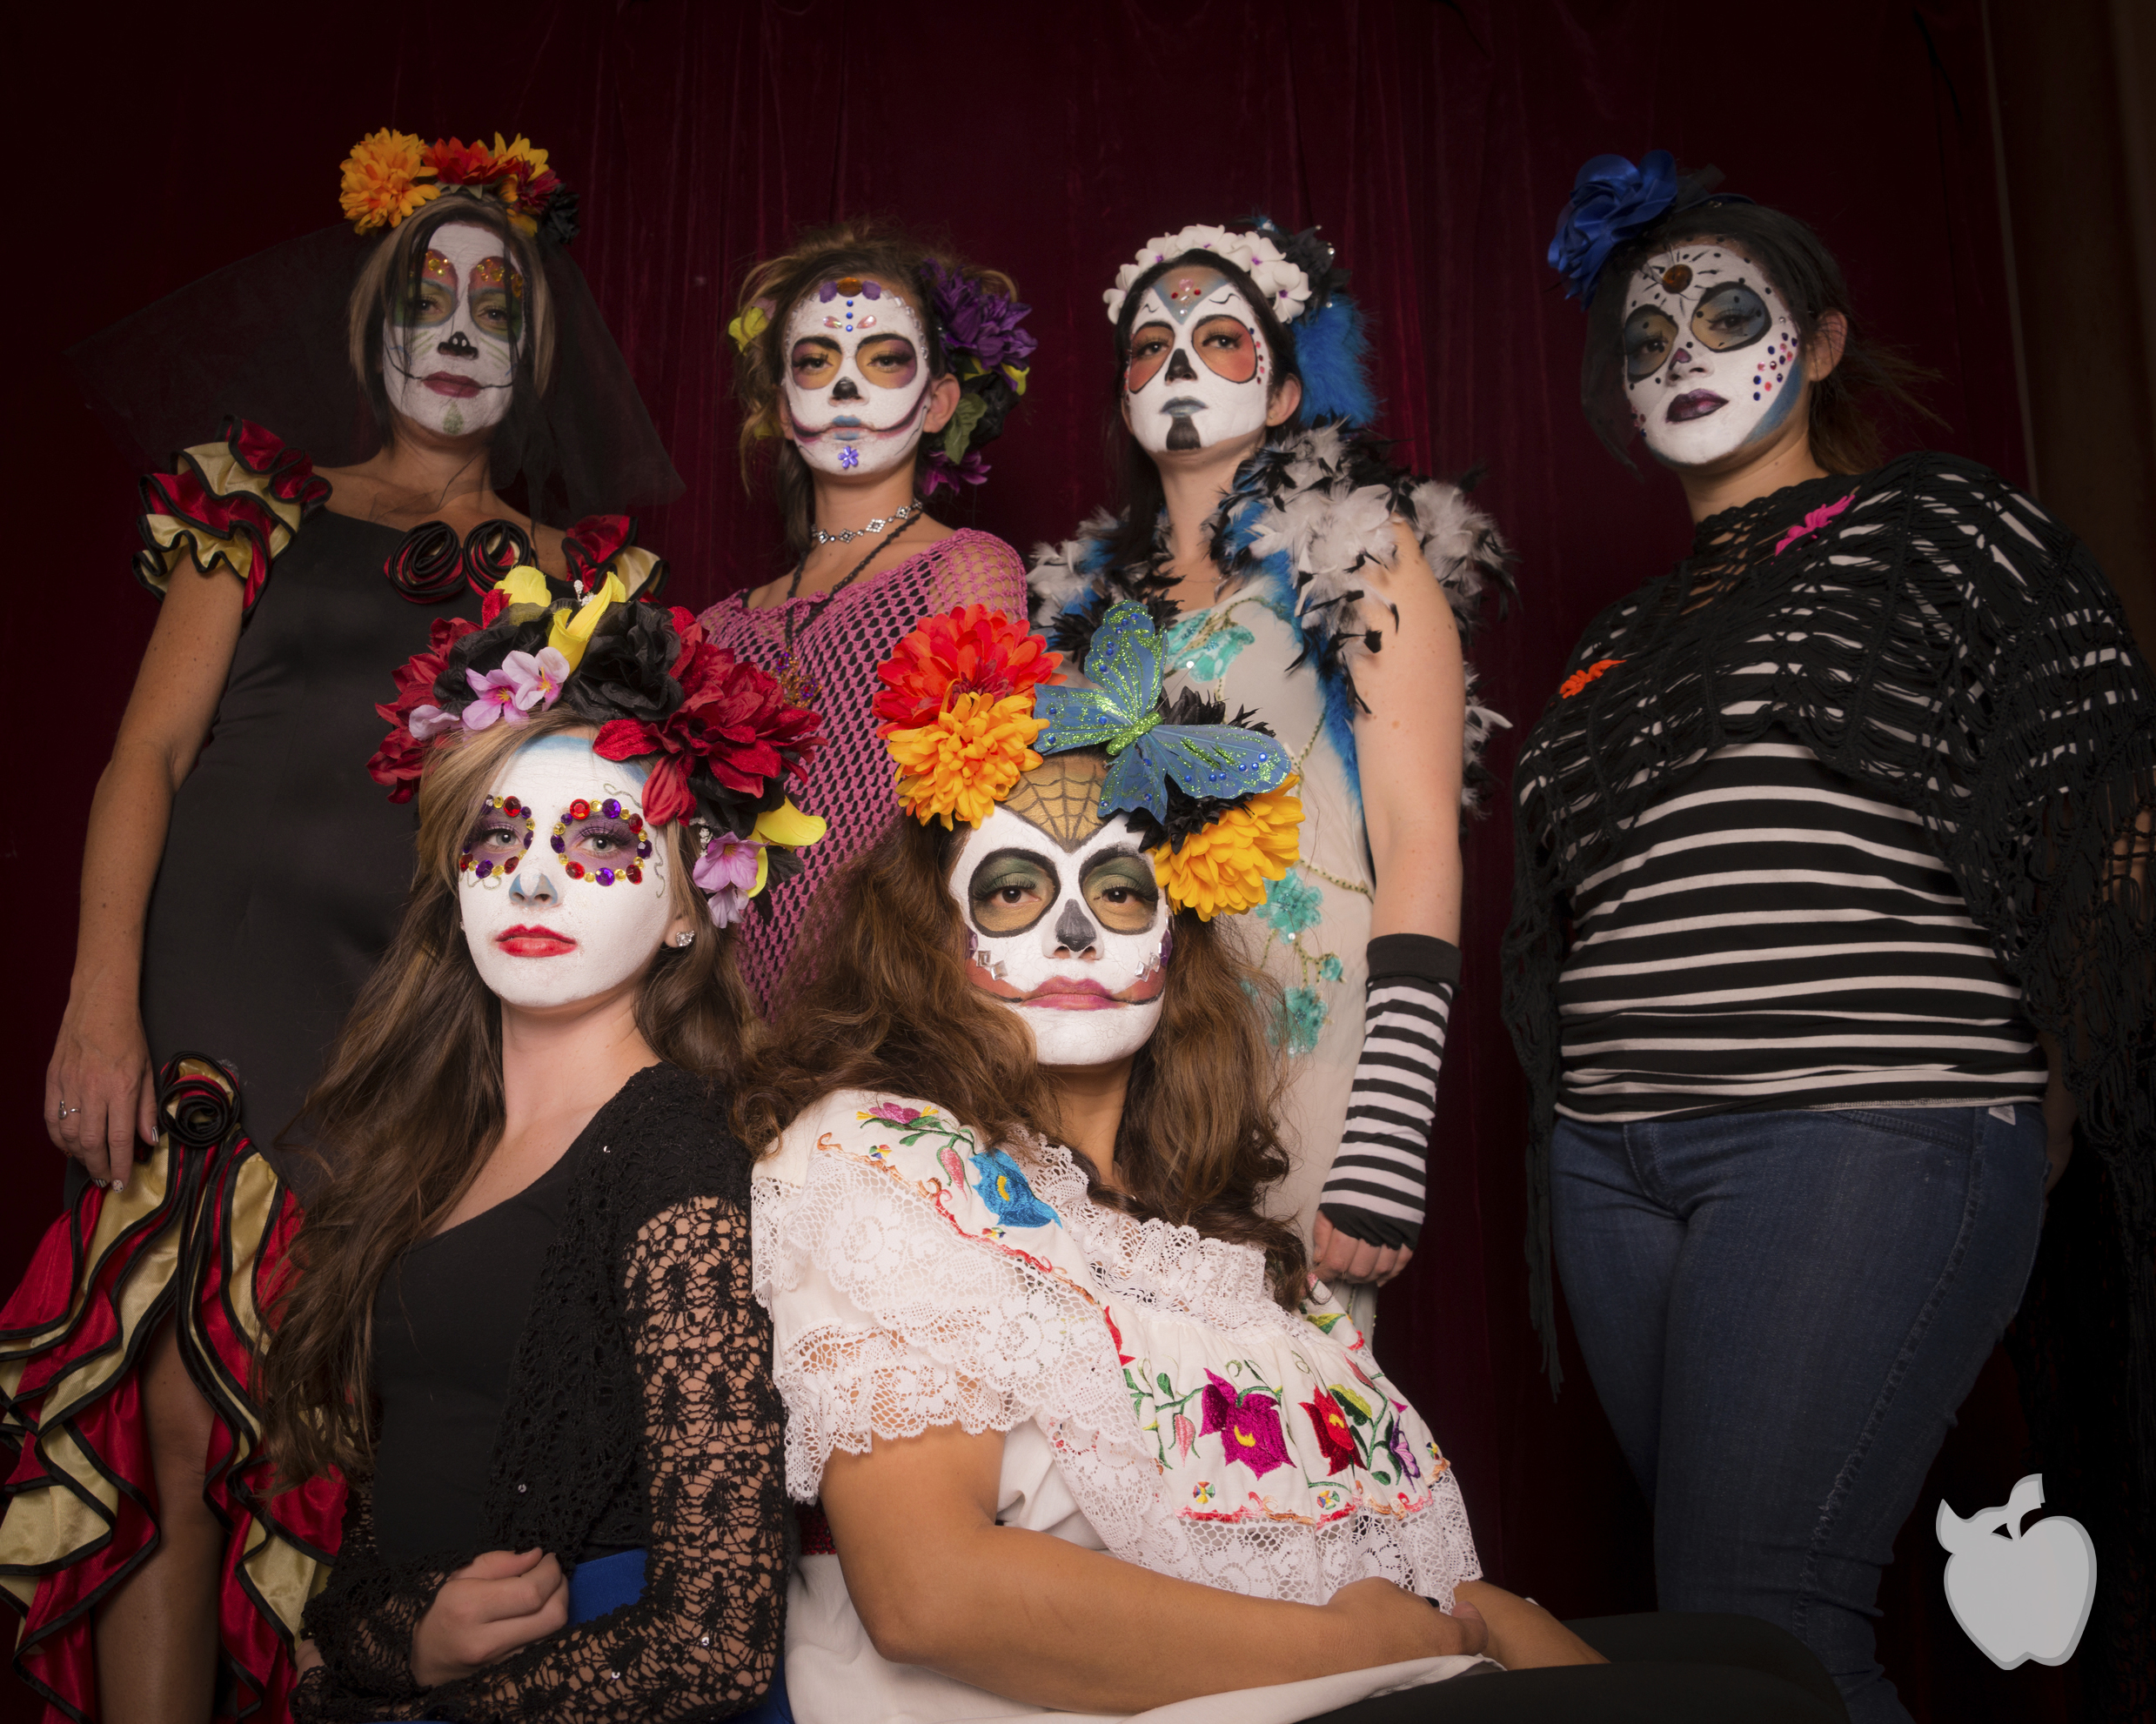 Girls dressed in Day of The Dead costumes and make posing